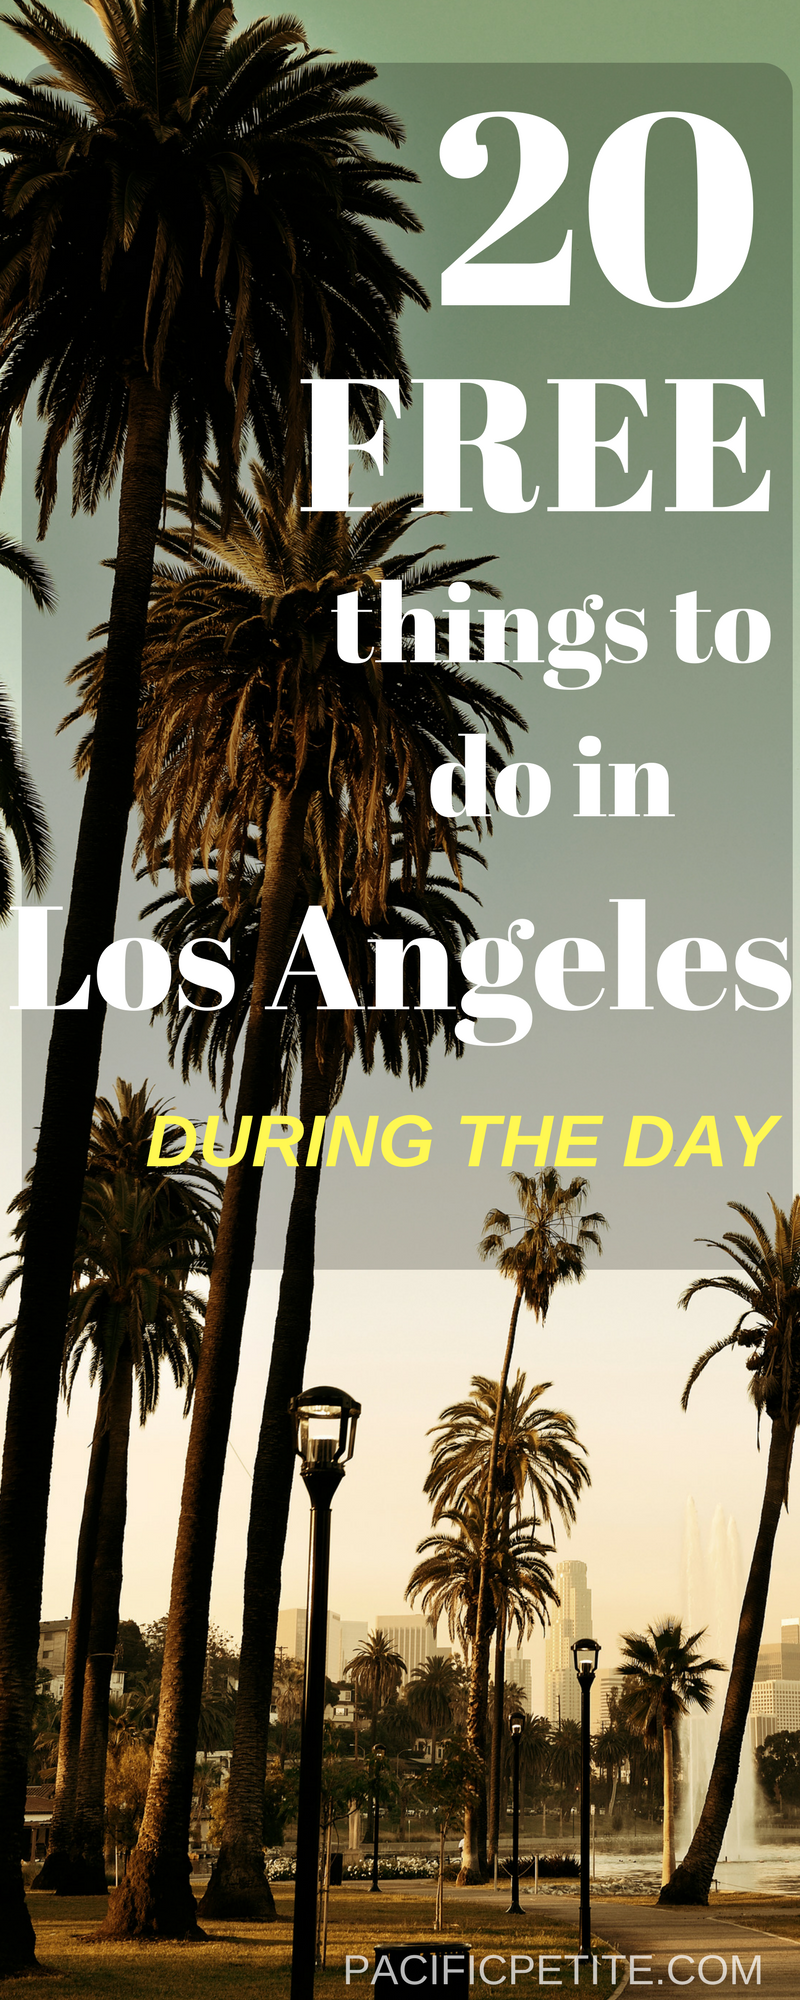 20 free things to do in los angeles during the day